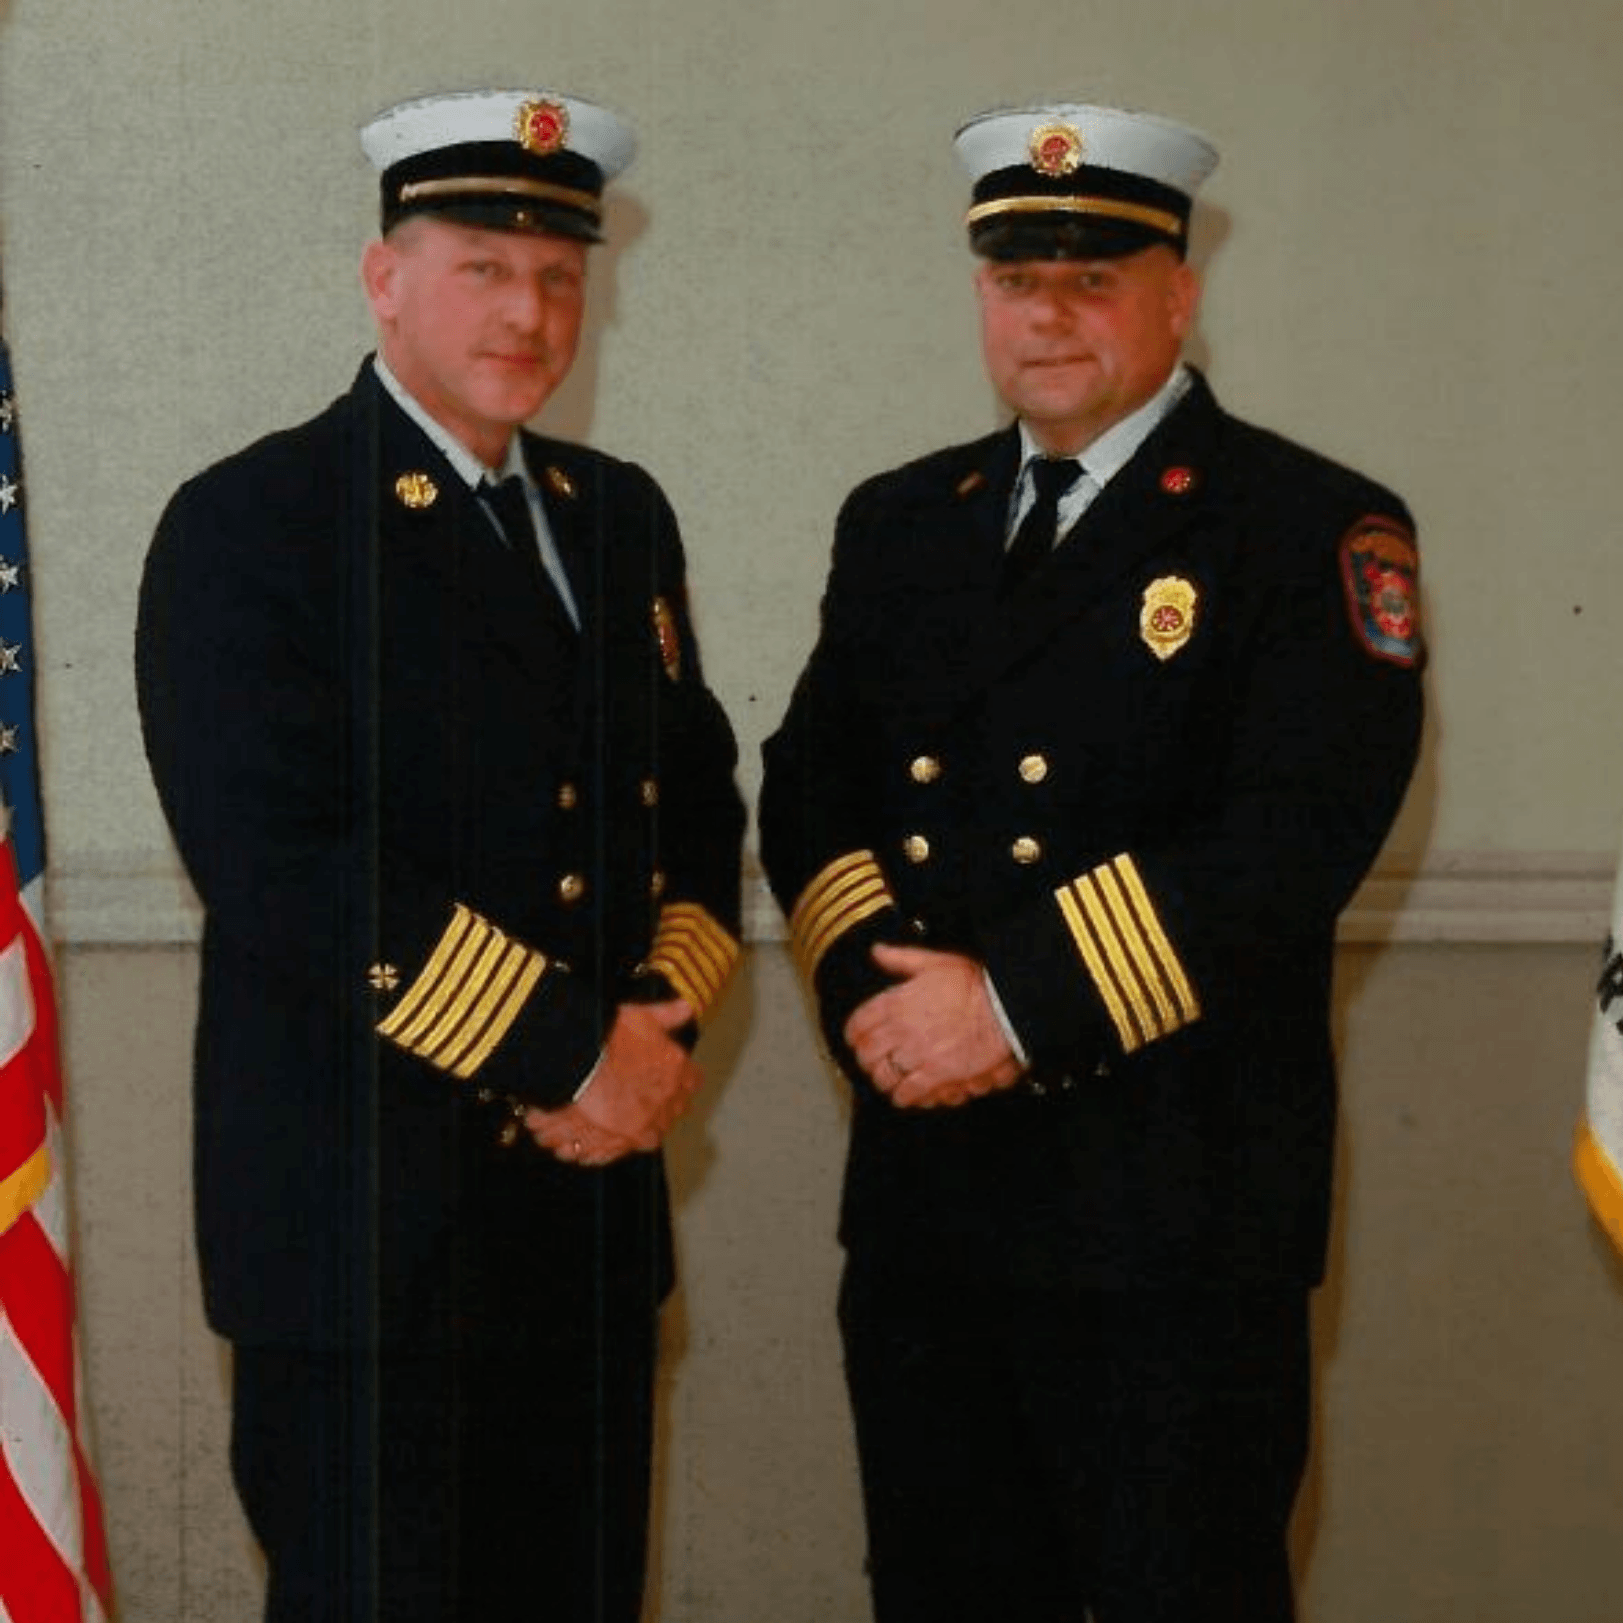 Image of Chief Nichols and Assistant Chief Davine